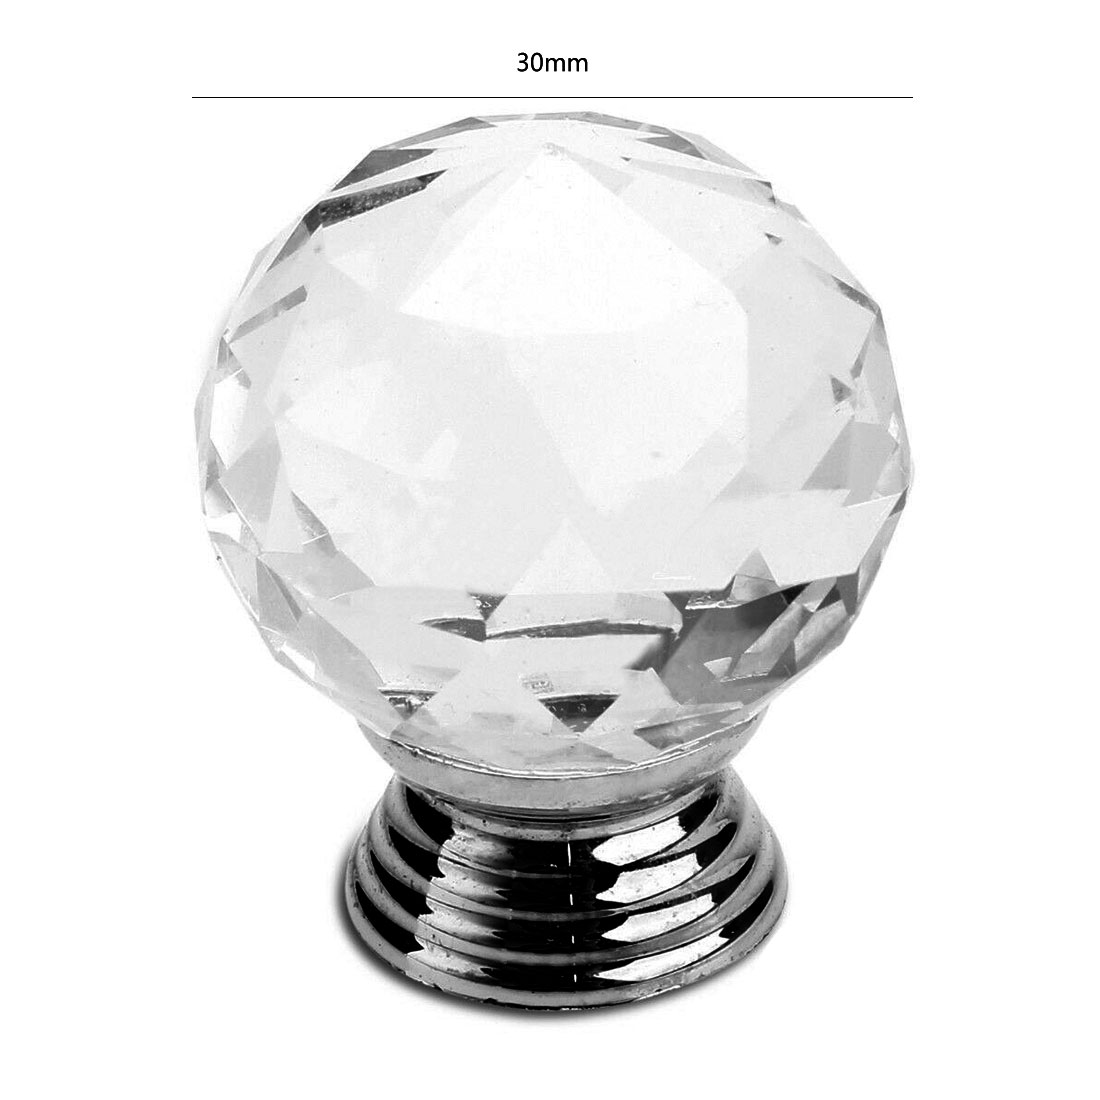 32x Crystal Door Knobs Handles Clear Glass Cupboard Drawer Cabinet Kitchen Knobs Sfhs Org